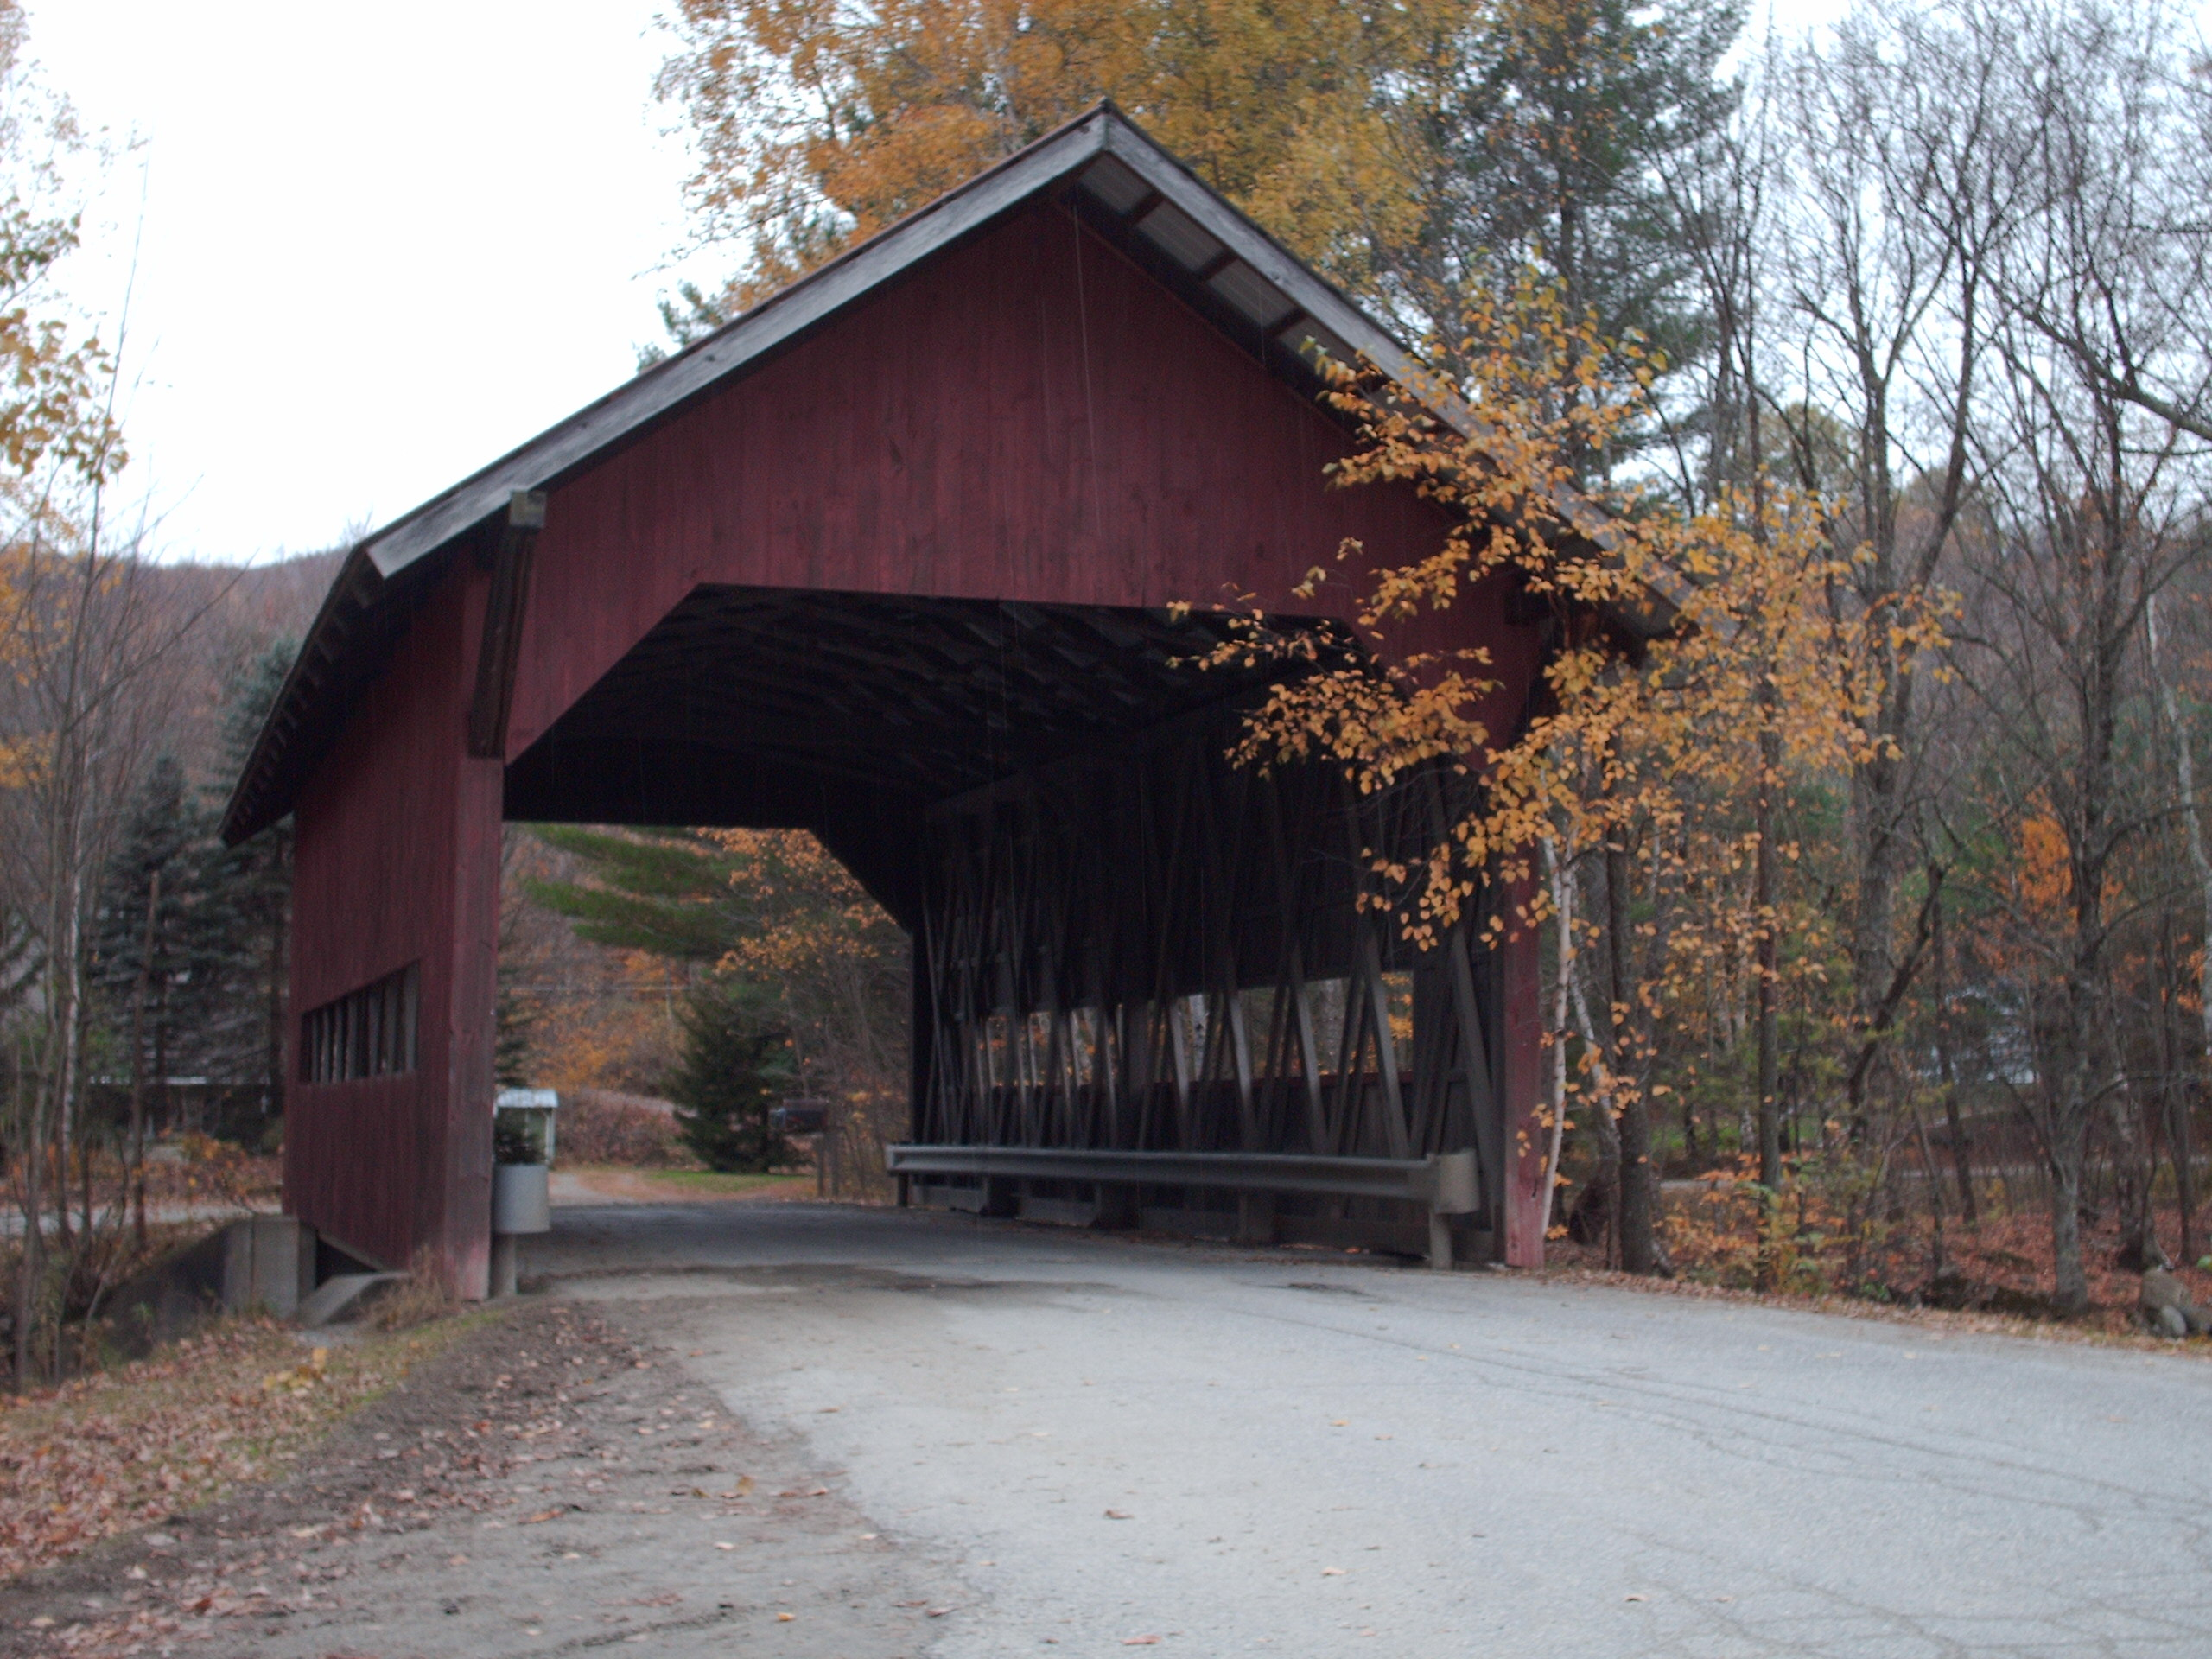 One of many of Vermonts wonderful covered bridges